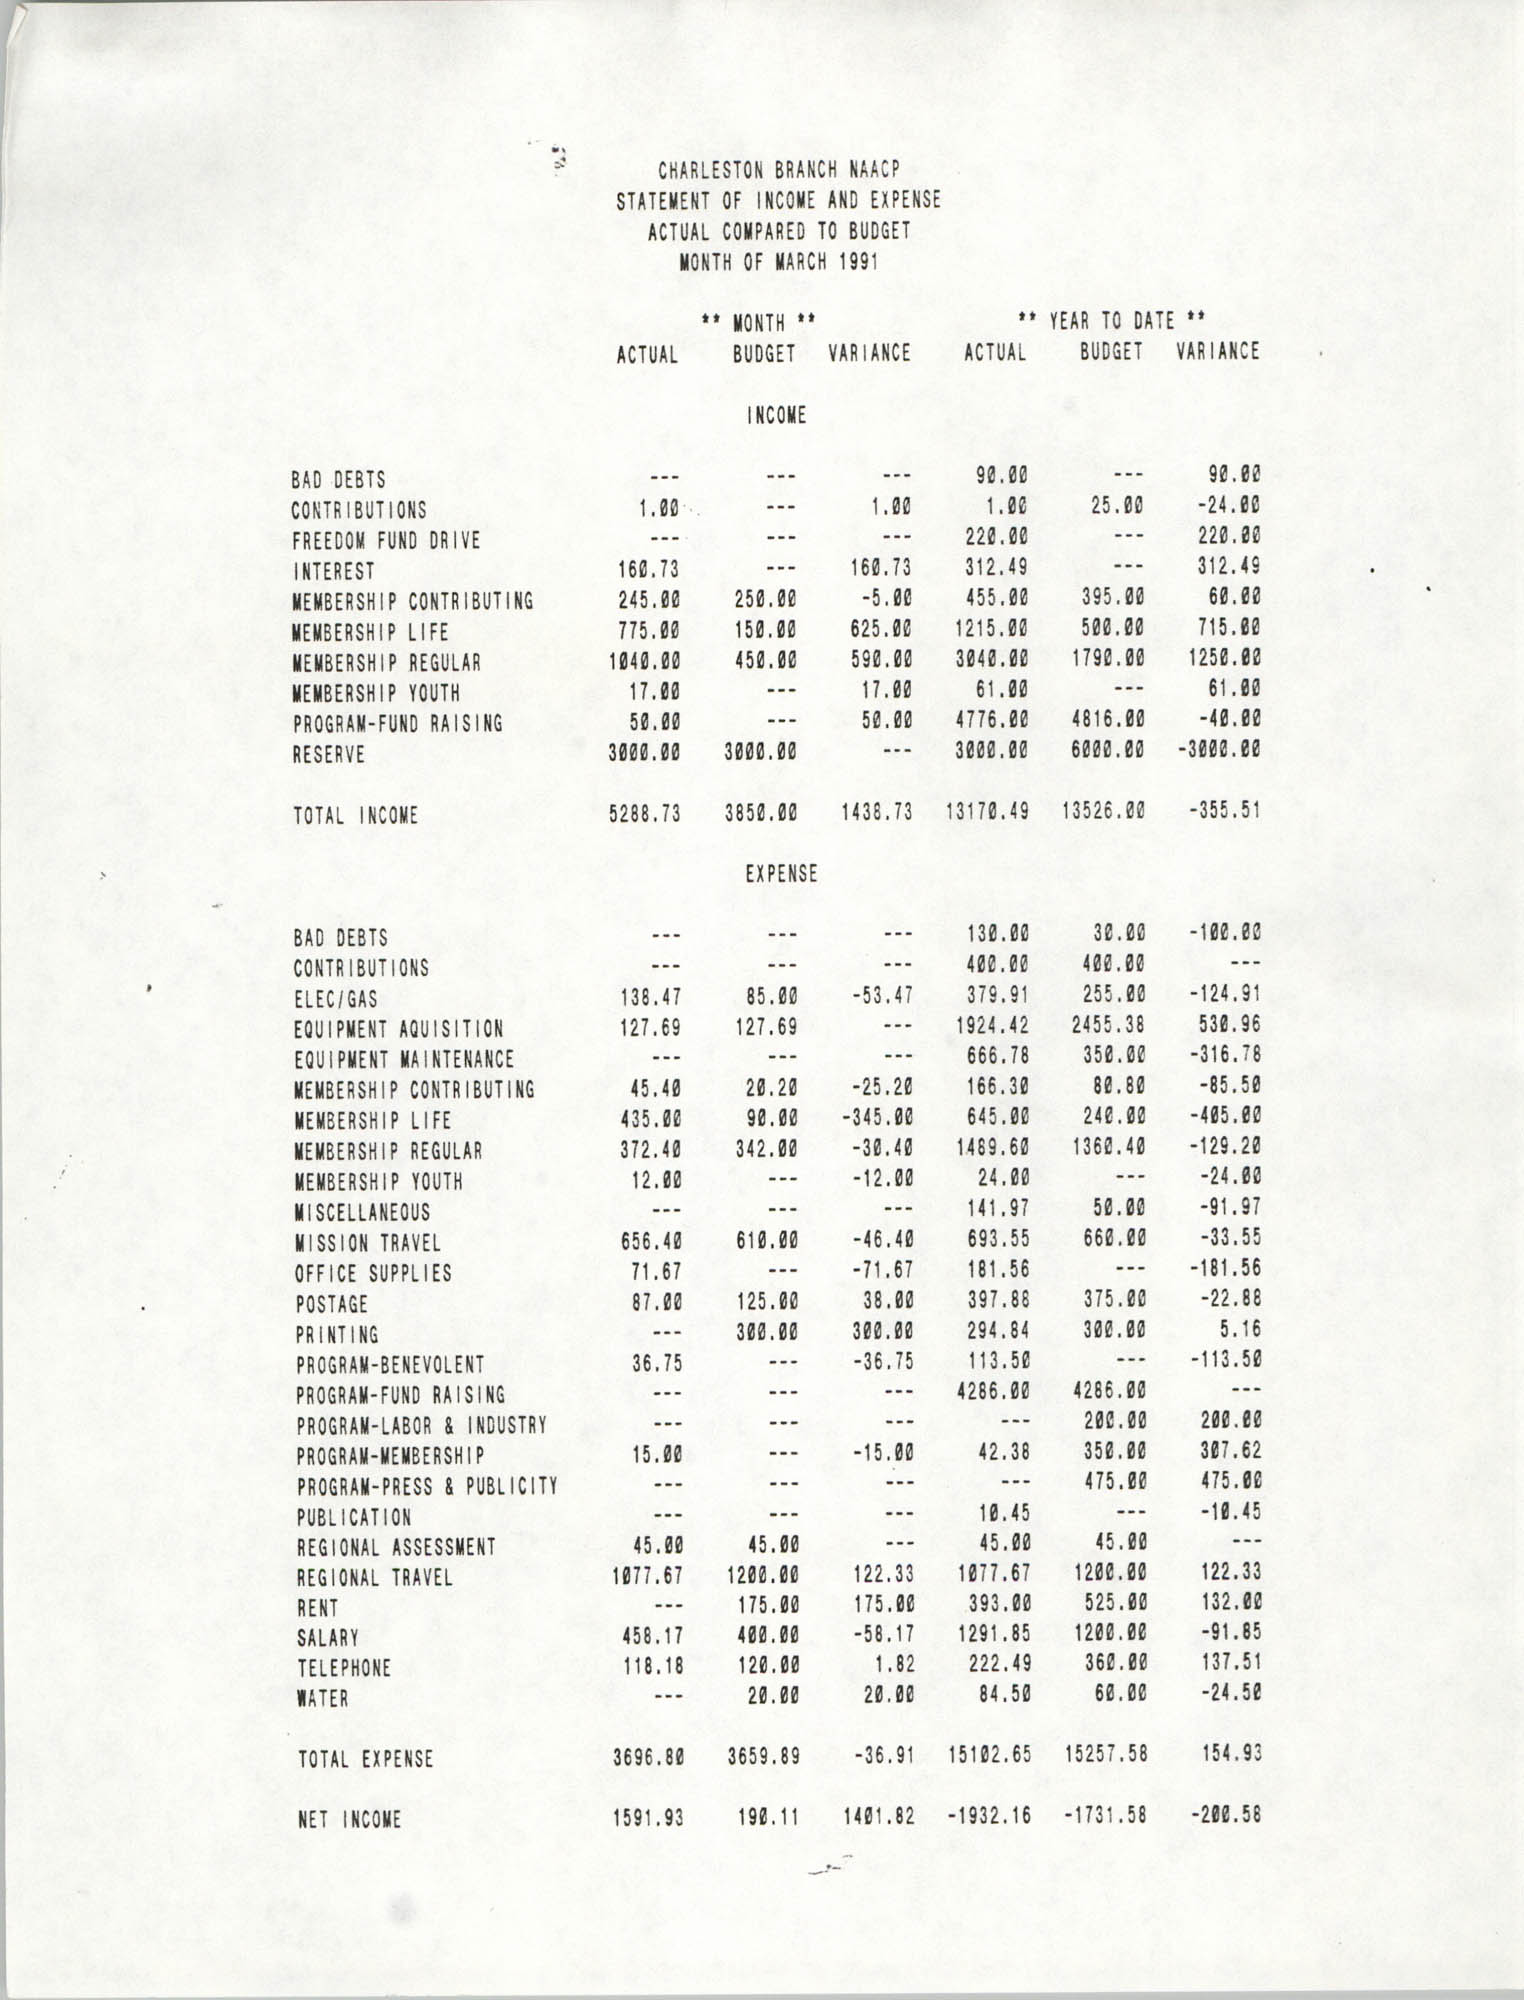 Charleston Branch of the NAACP Statement of Income and Expense, March 1991